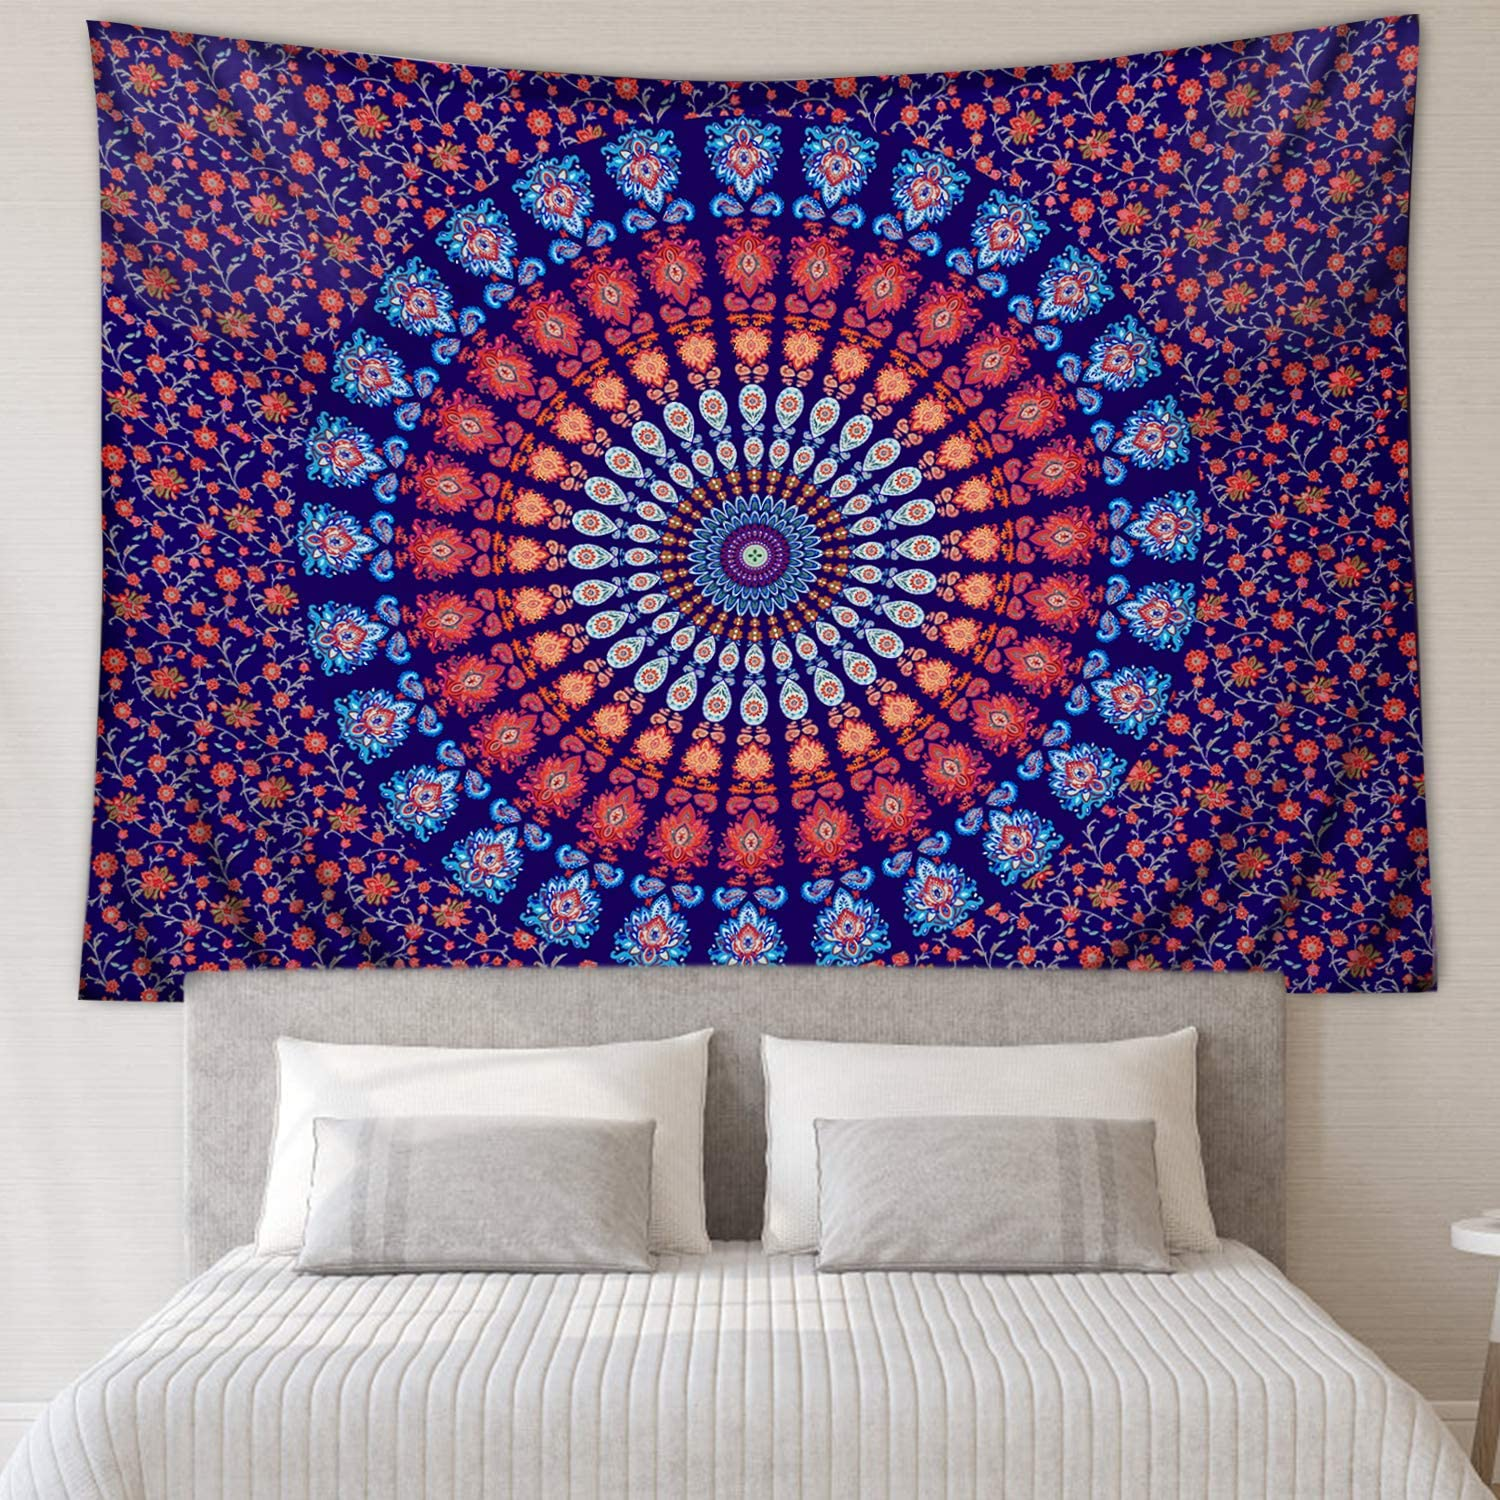 Amazon Com Zeronal Mandala Tapestry 59 X 79 Indian Hippie Bohemian Psychedelic Peacock Wall Hanging For Bedroom Living Room Wall Decor Purple Blue Everything Else